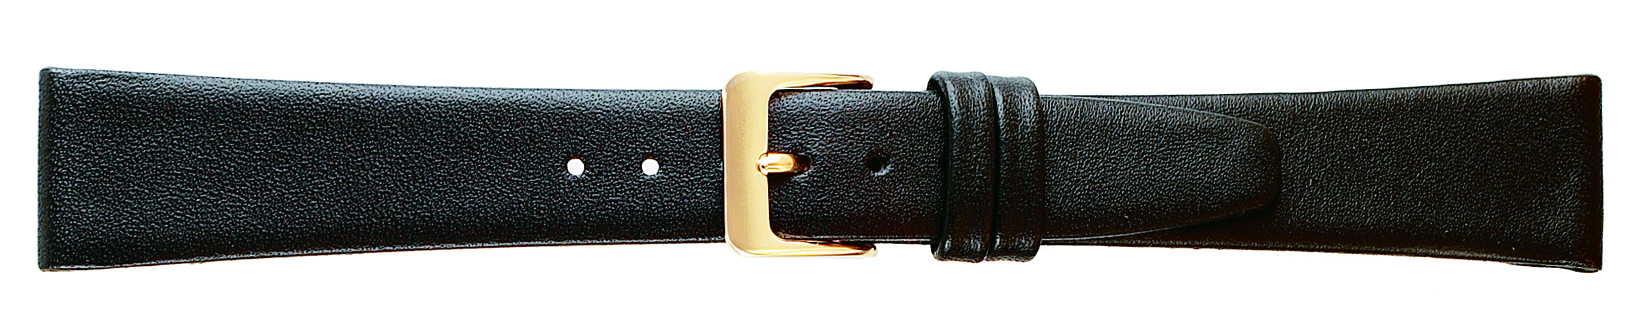 18MM Leather Band Black Smooth Calf Short-0